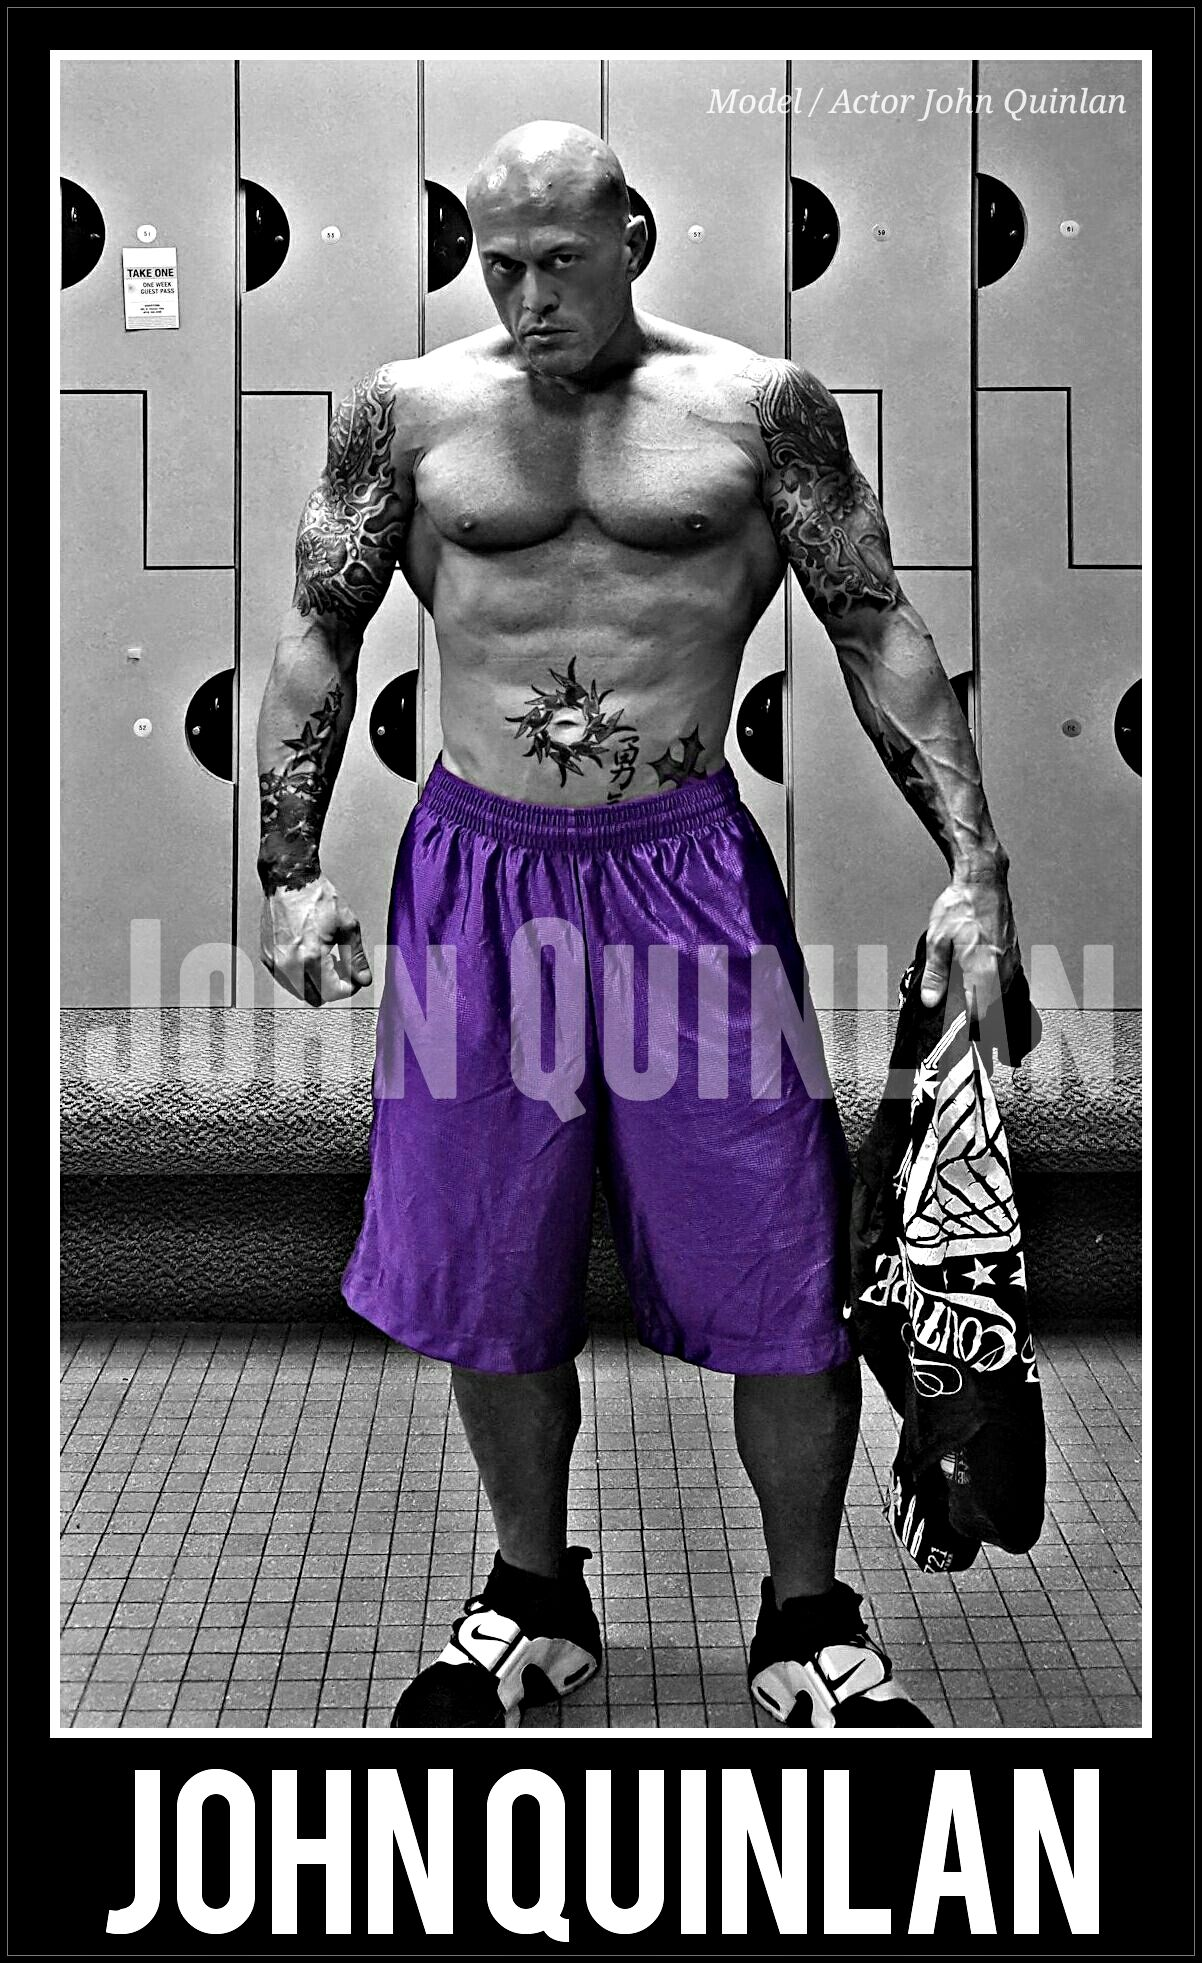 Model & Actor John Joseph Quinlan Post Fitness Gym Workout Poster #JohnQuinlan